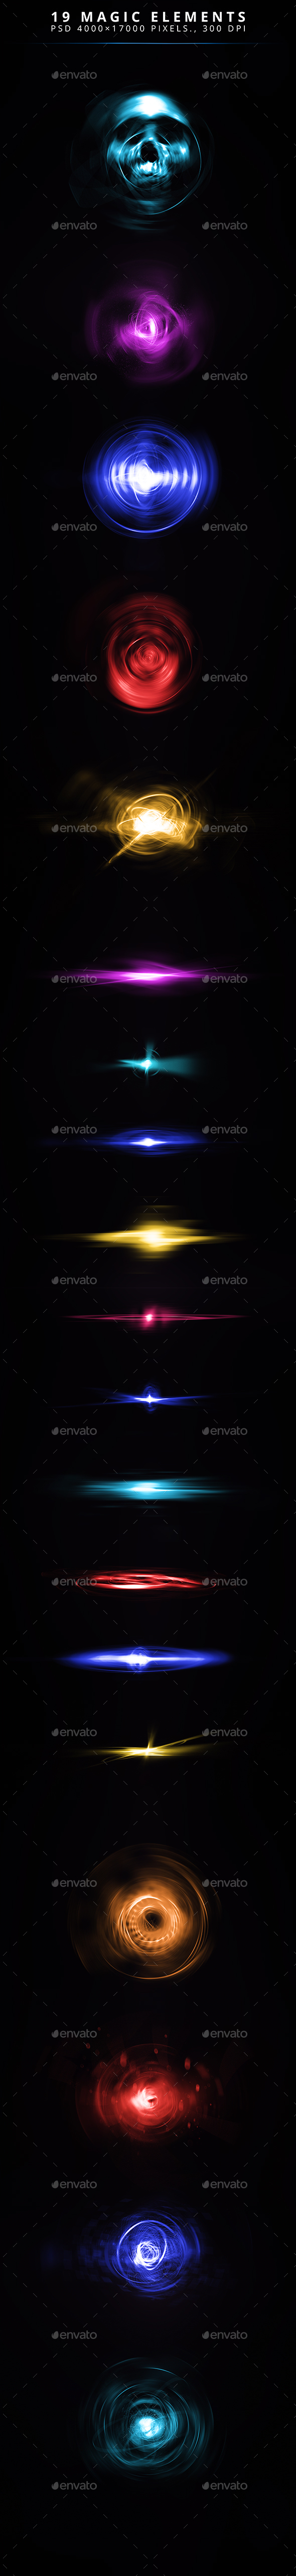 GraphicRiver 19 Magic Elements 20807439